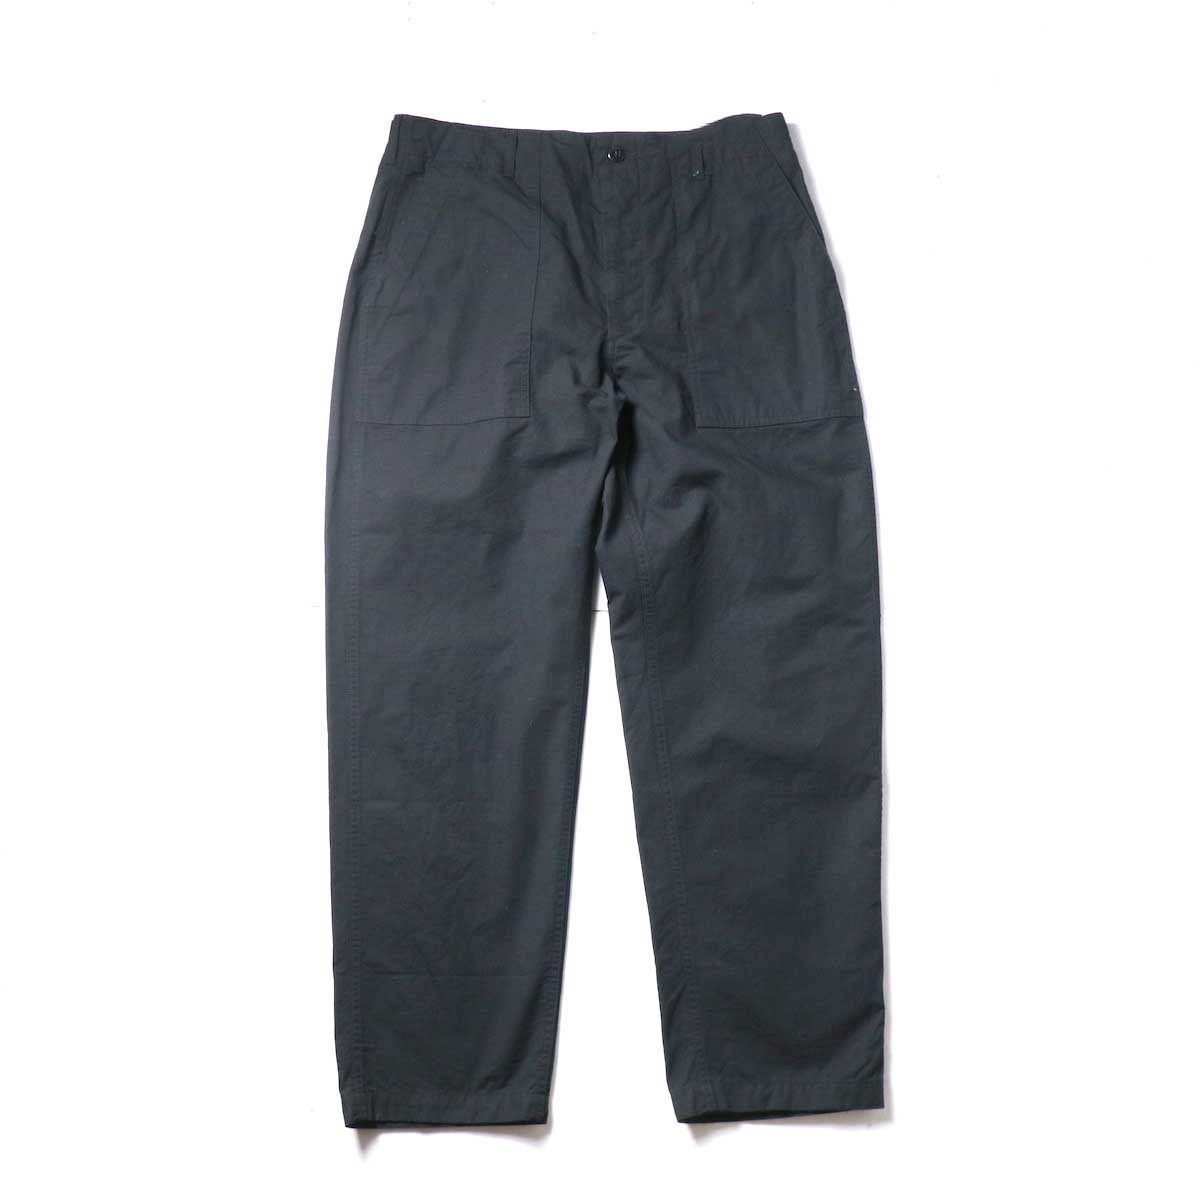 Engineered Garments / Fatigue Pant - Cotton Ripstop (Black)